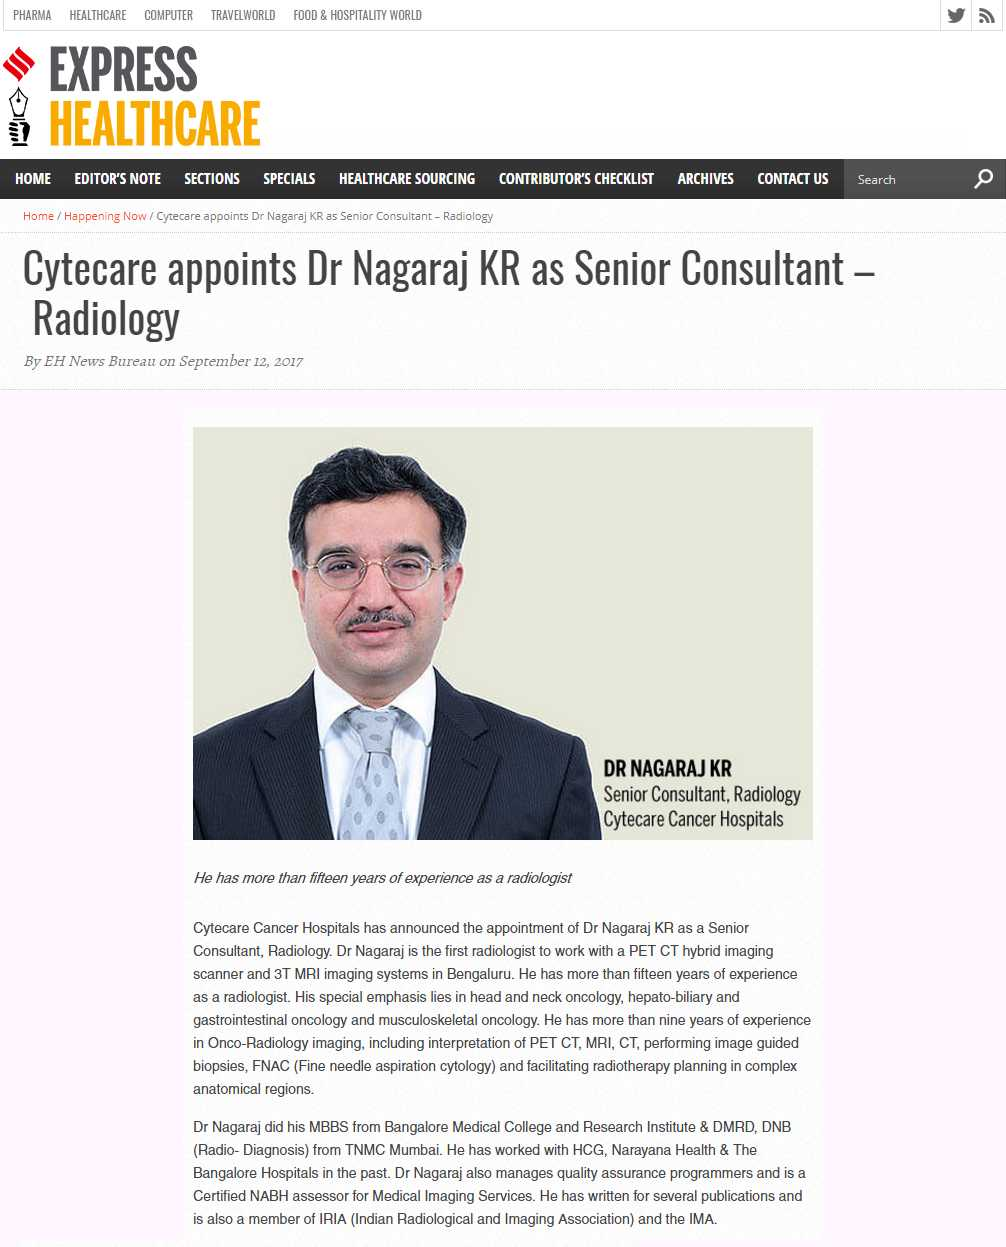 Cytecare appoints Dr Nagaraj KR as Senior Consultant- Radiology